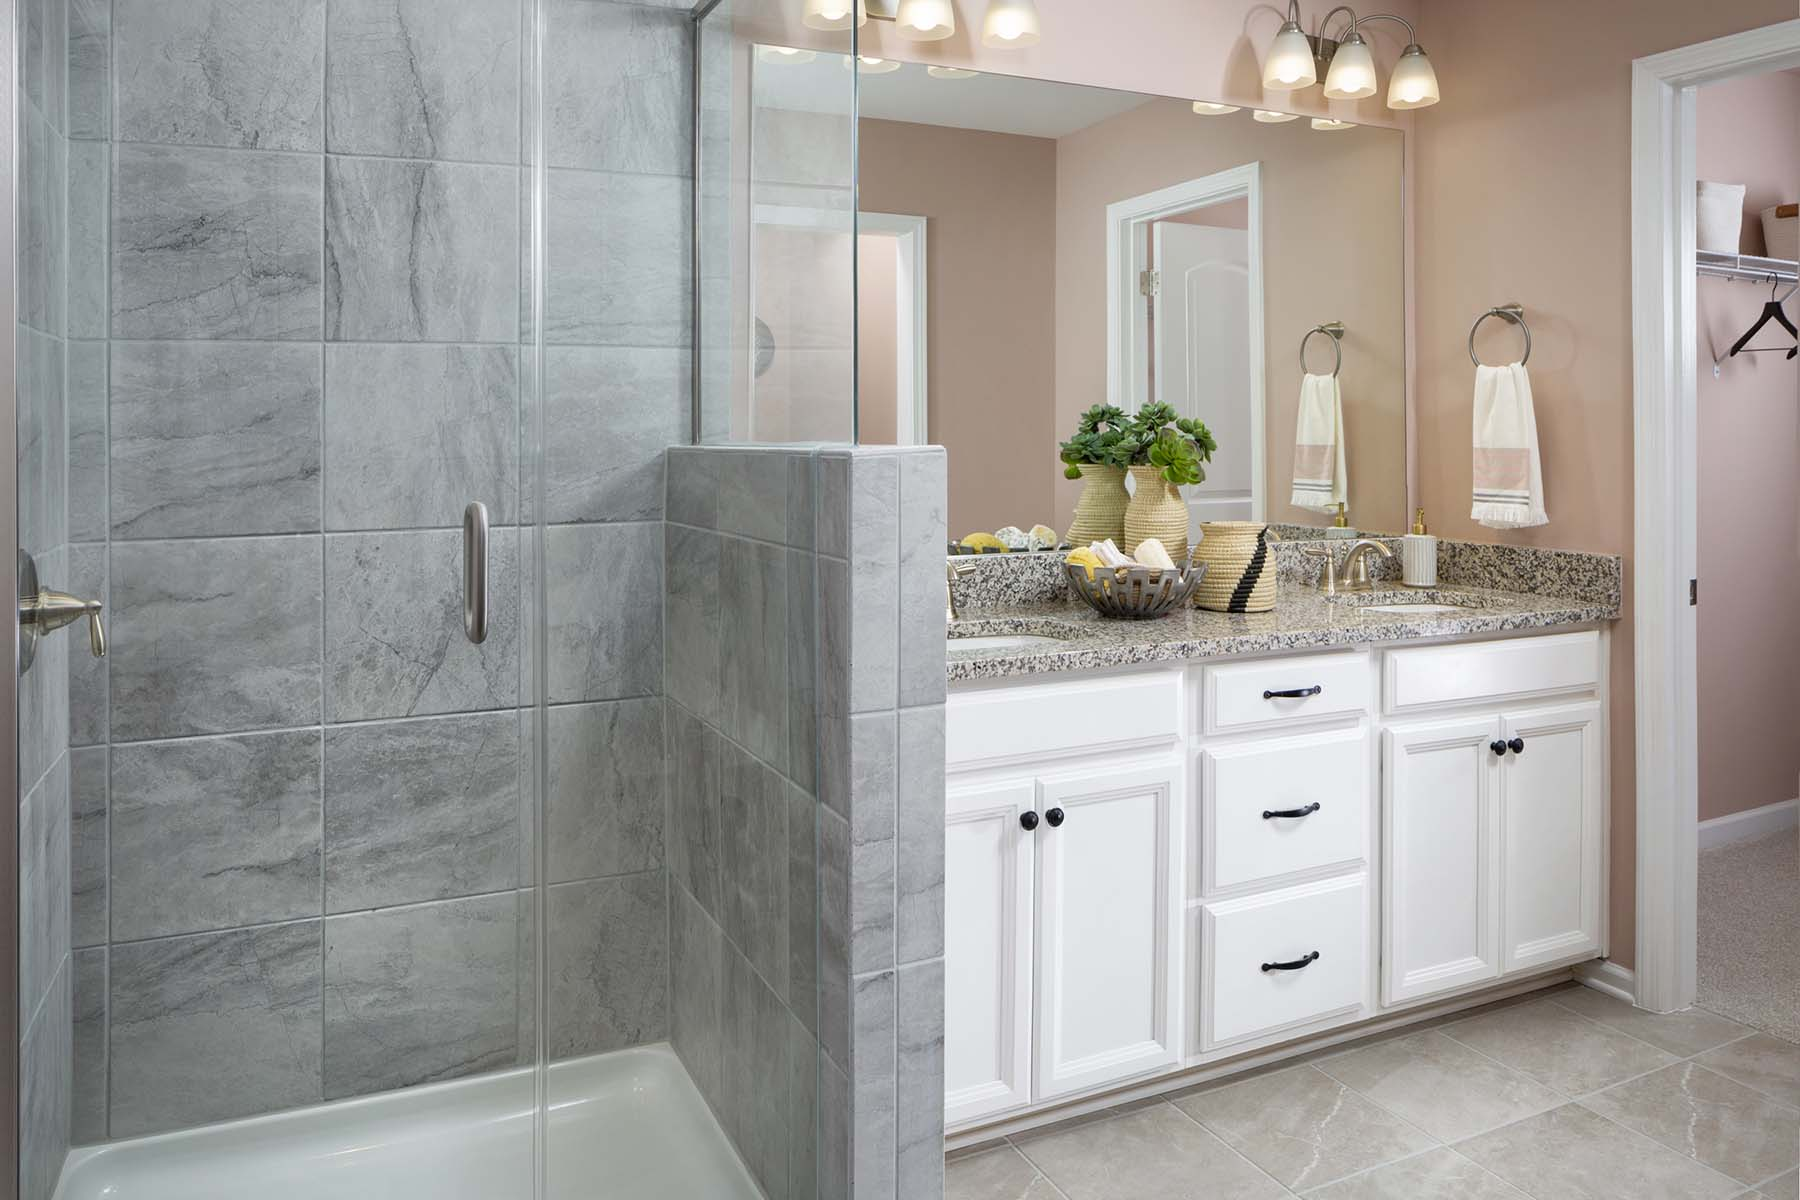 Ava Plan Bathroom_Master Bath at Galloway Park in Charlotte North Carolina by Mattamy Homes